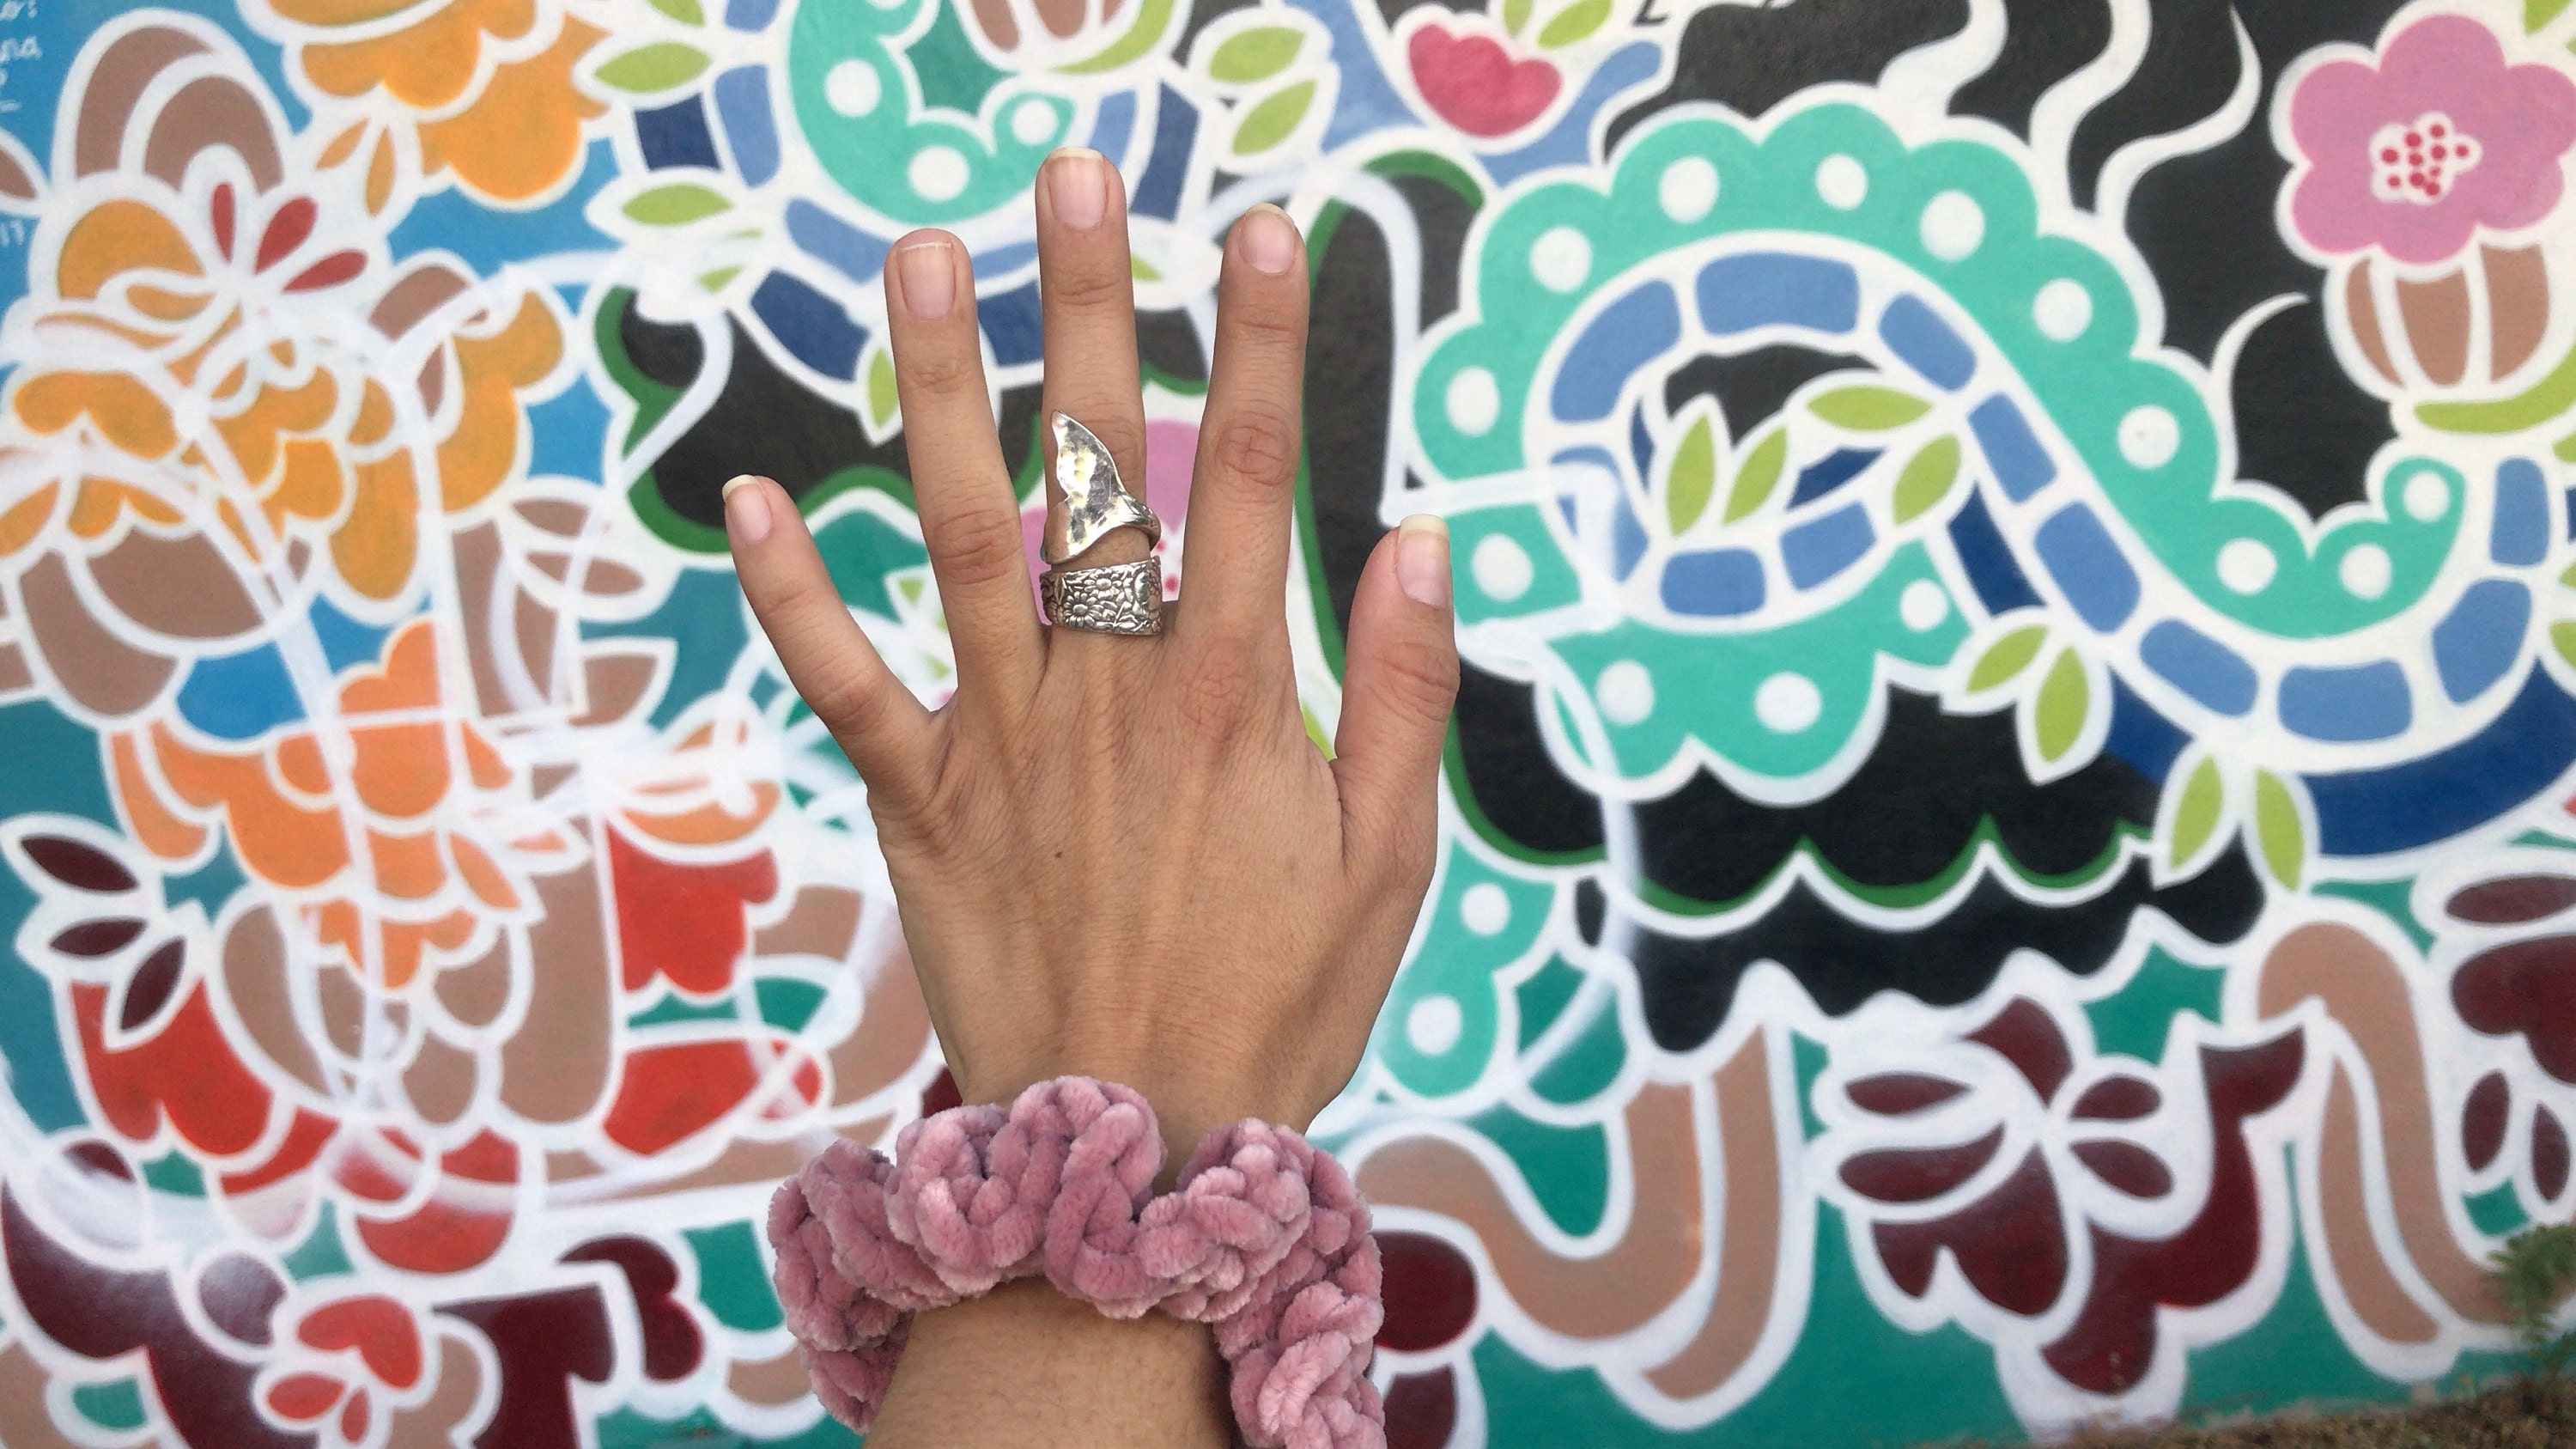 Mermaid ring by Avalonia Jewelry displayed against street art a Wynwood Walls Miami. Pink velvet scrunchy by Knot For U also featured.